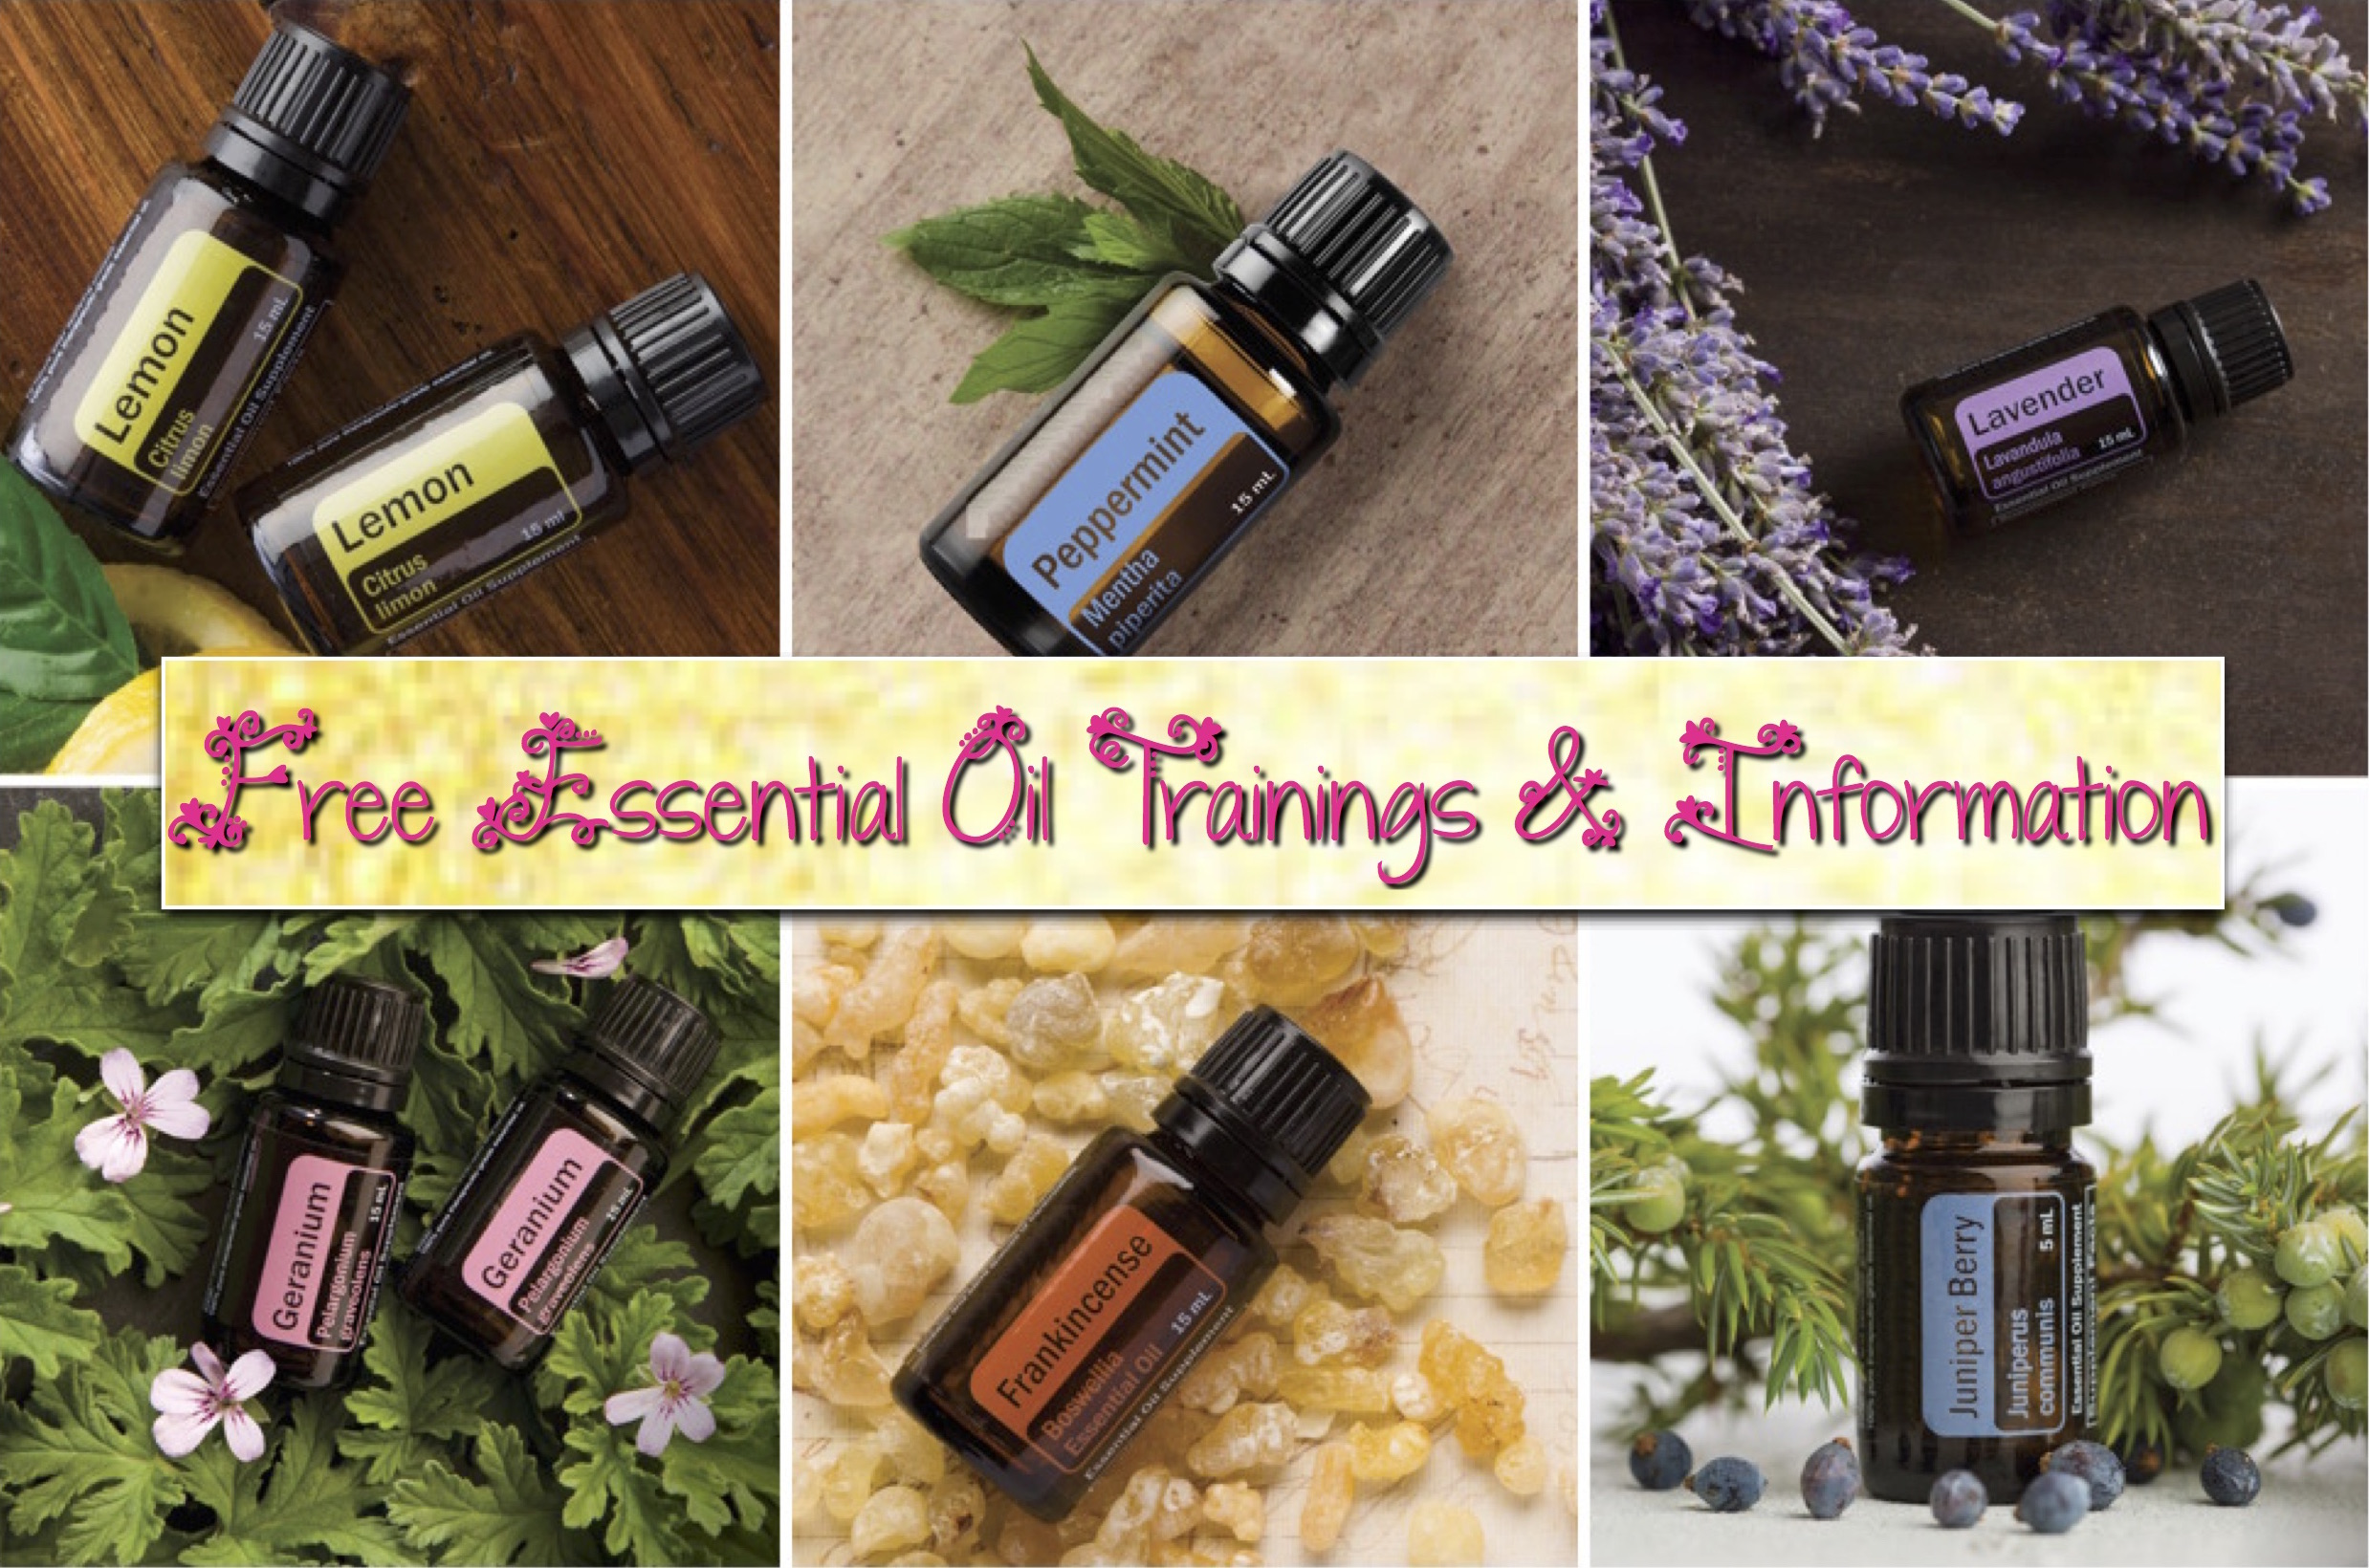 Protected: My Preferred Essential Oils